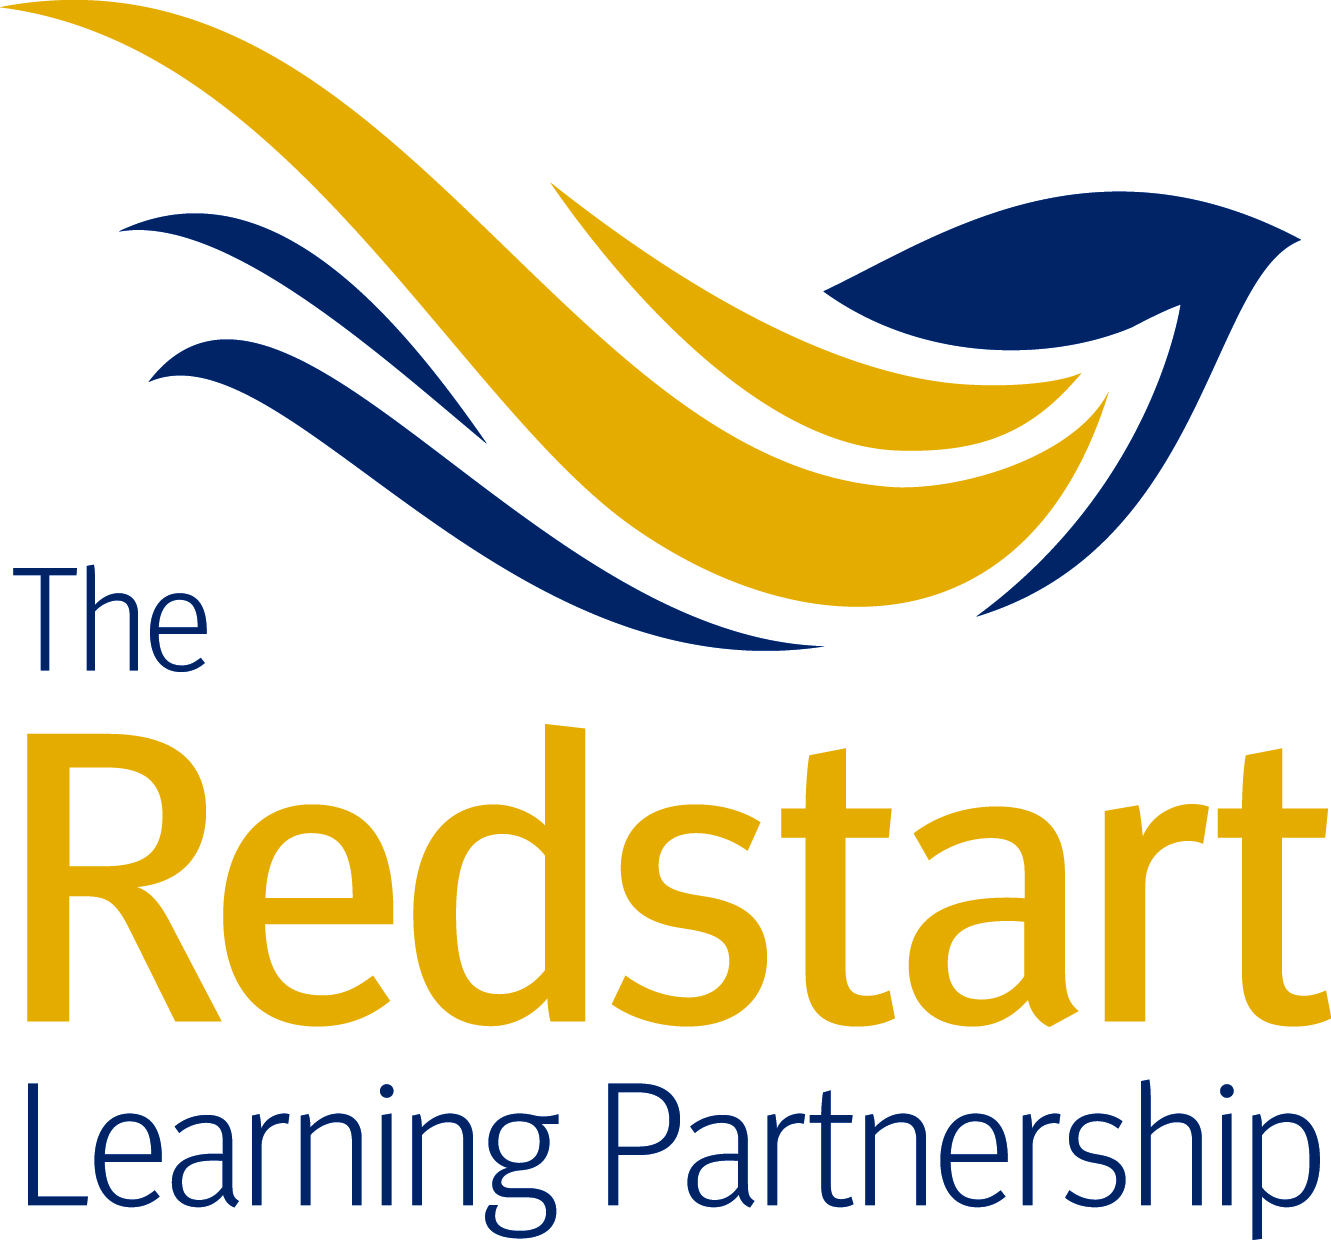 The Redstart Learning Partnership